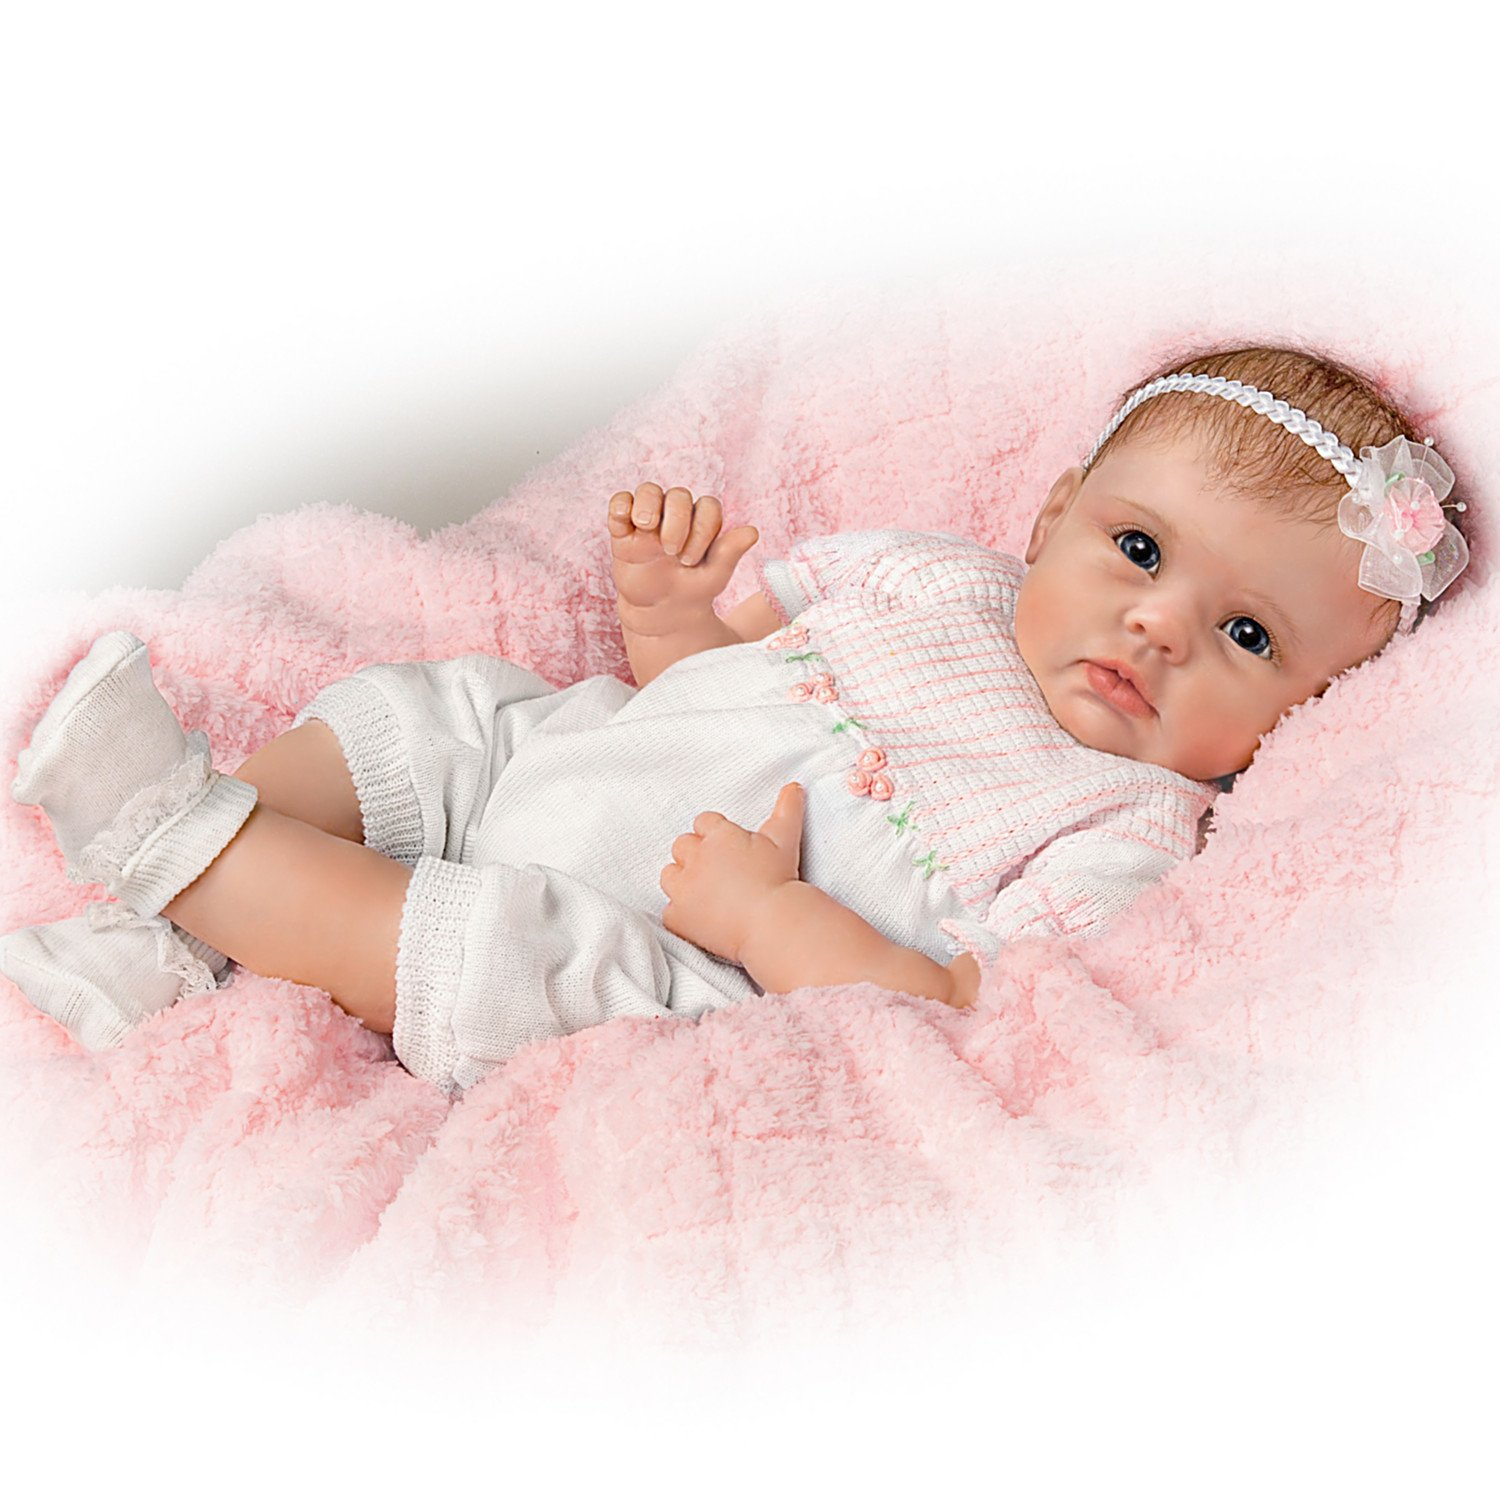 So Truly Real Olivia's Gentle Touch Lifelike Baby Girl Doll By Linda Murray by The Bradford Exchange